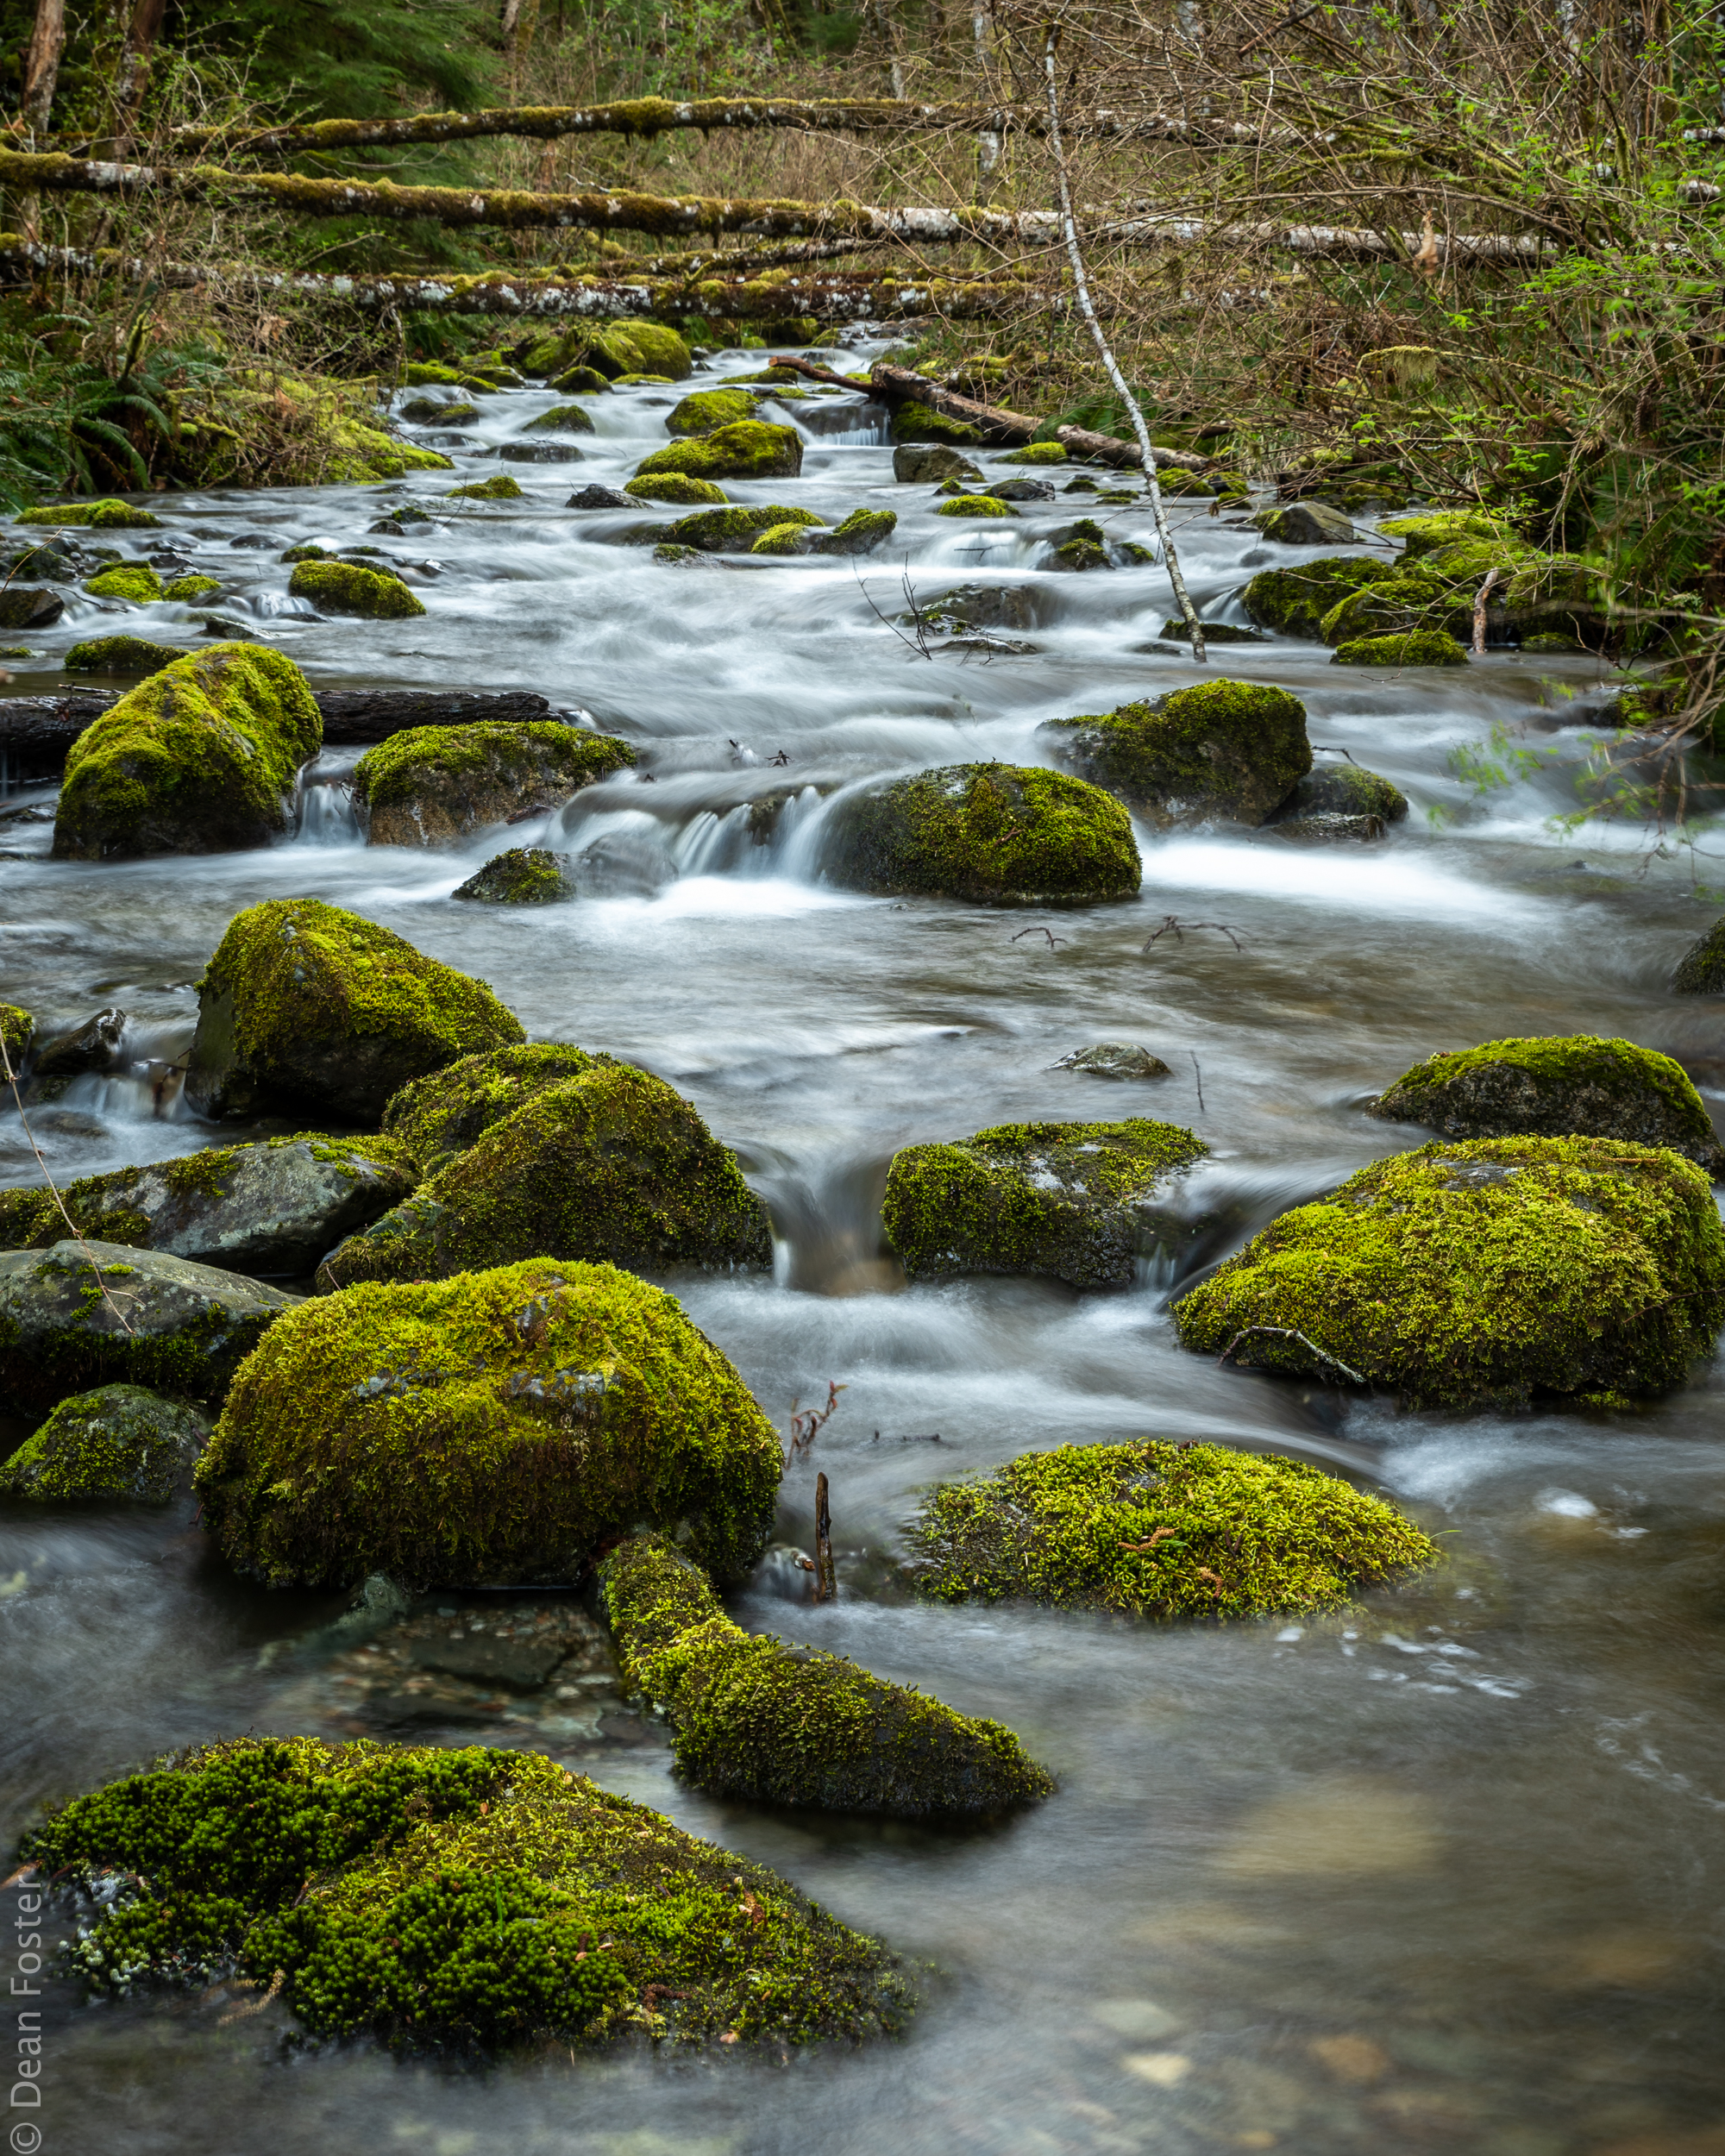 A small creek meanders through the moss covered rocks on Quadra Island